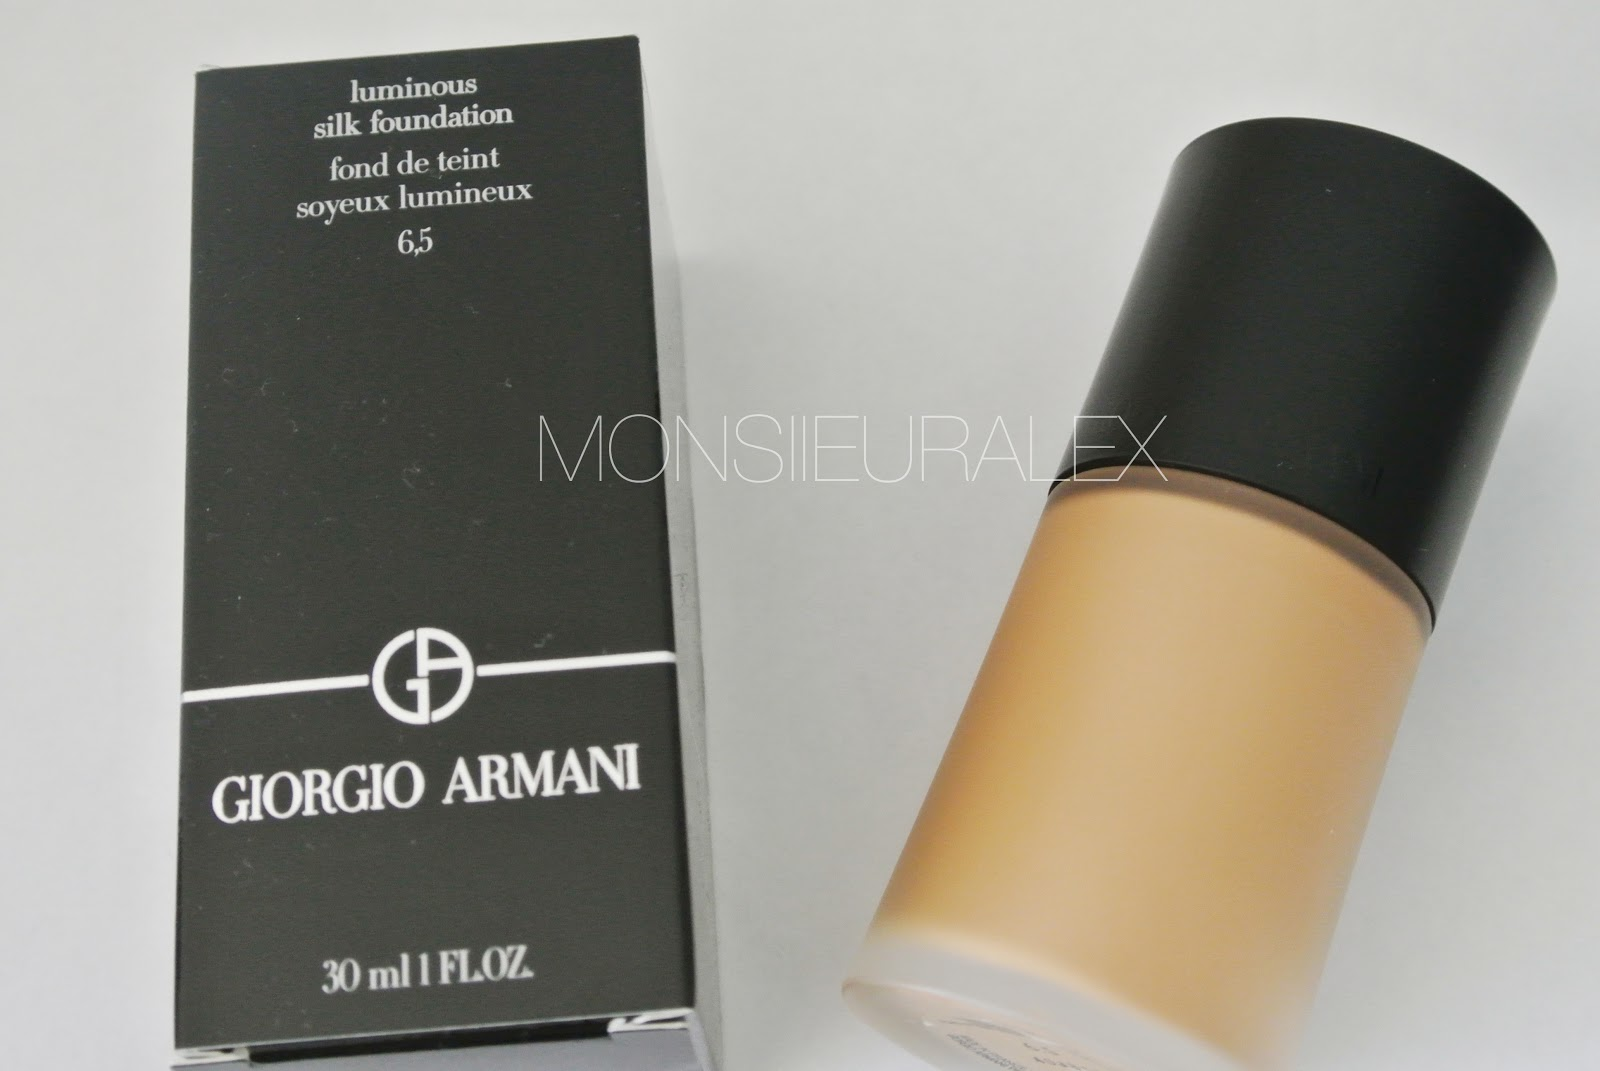 Top 10 Best Liquid Foundations for All Skin Types (3)